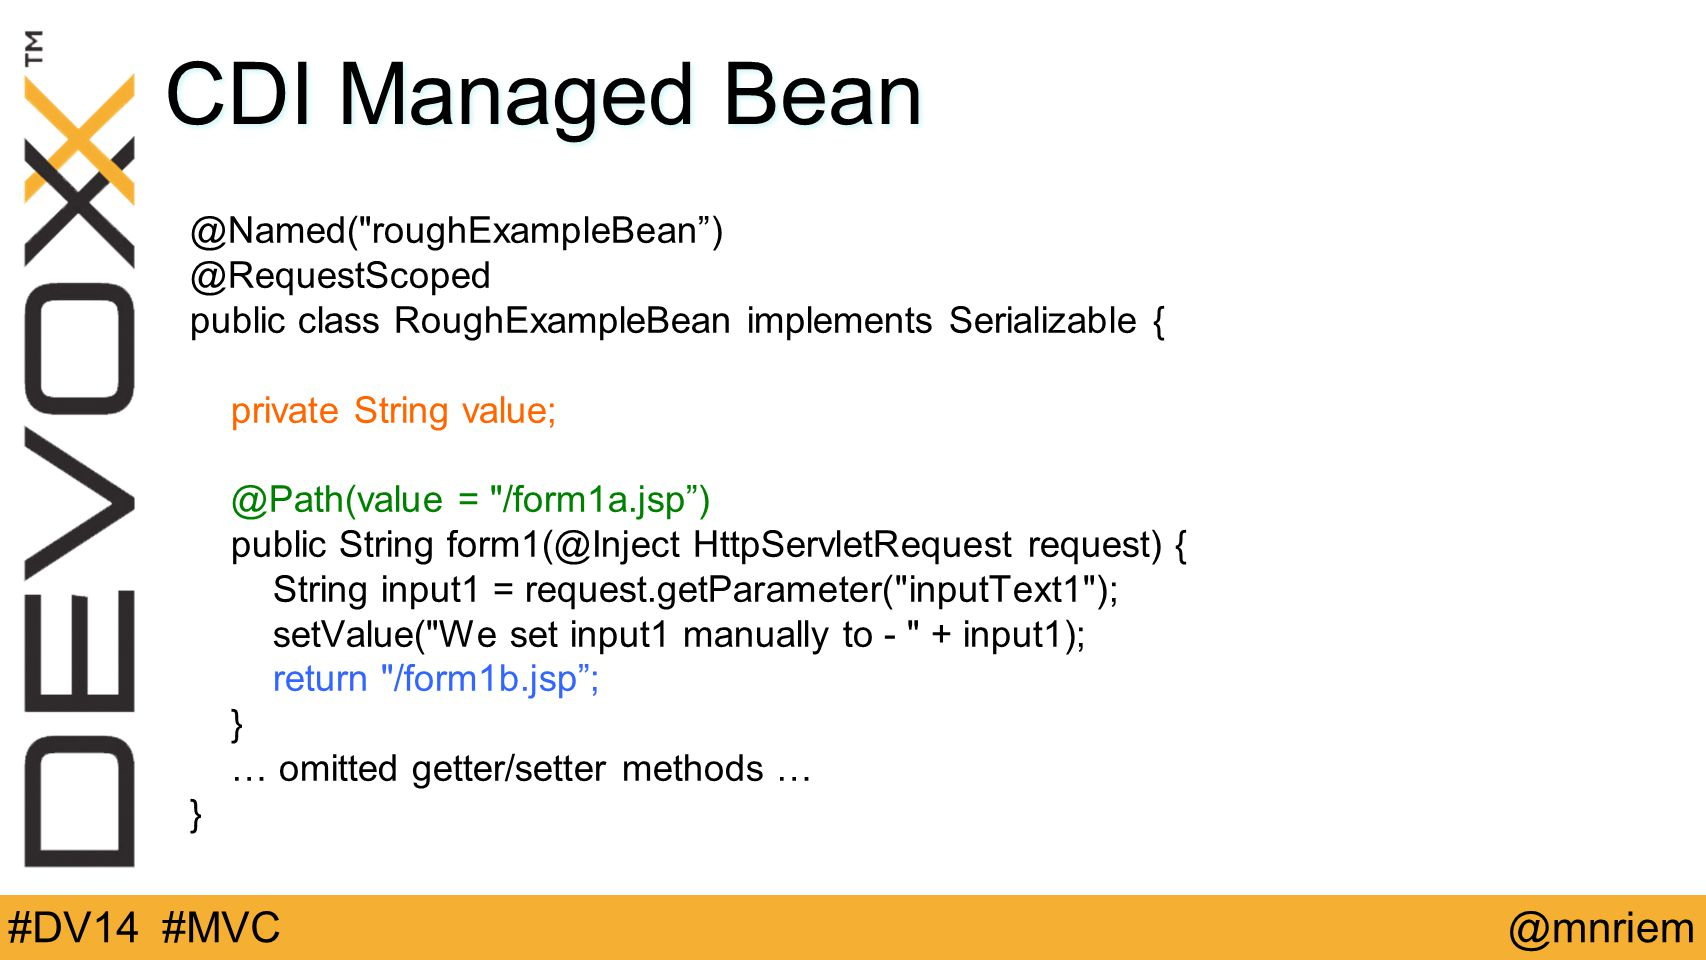 @mnriem#DV14 #MVC CDI Managed Bean @Named(